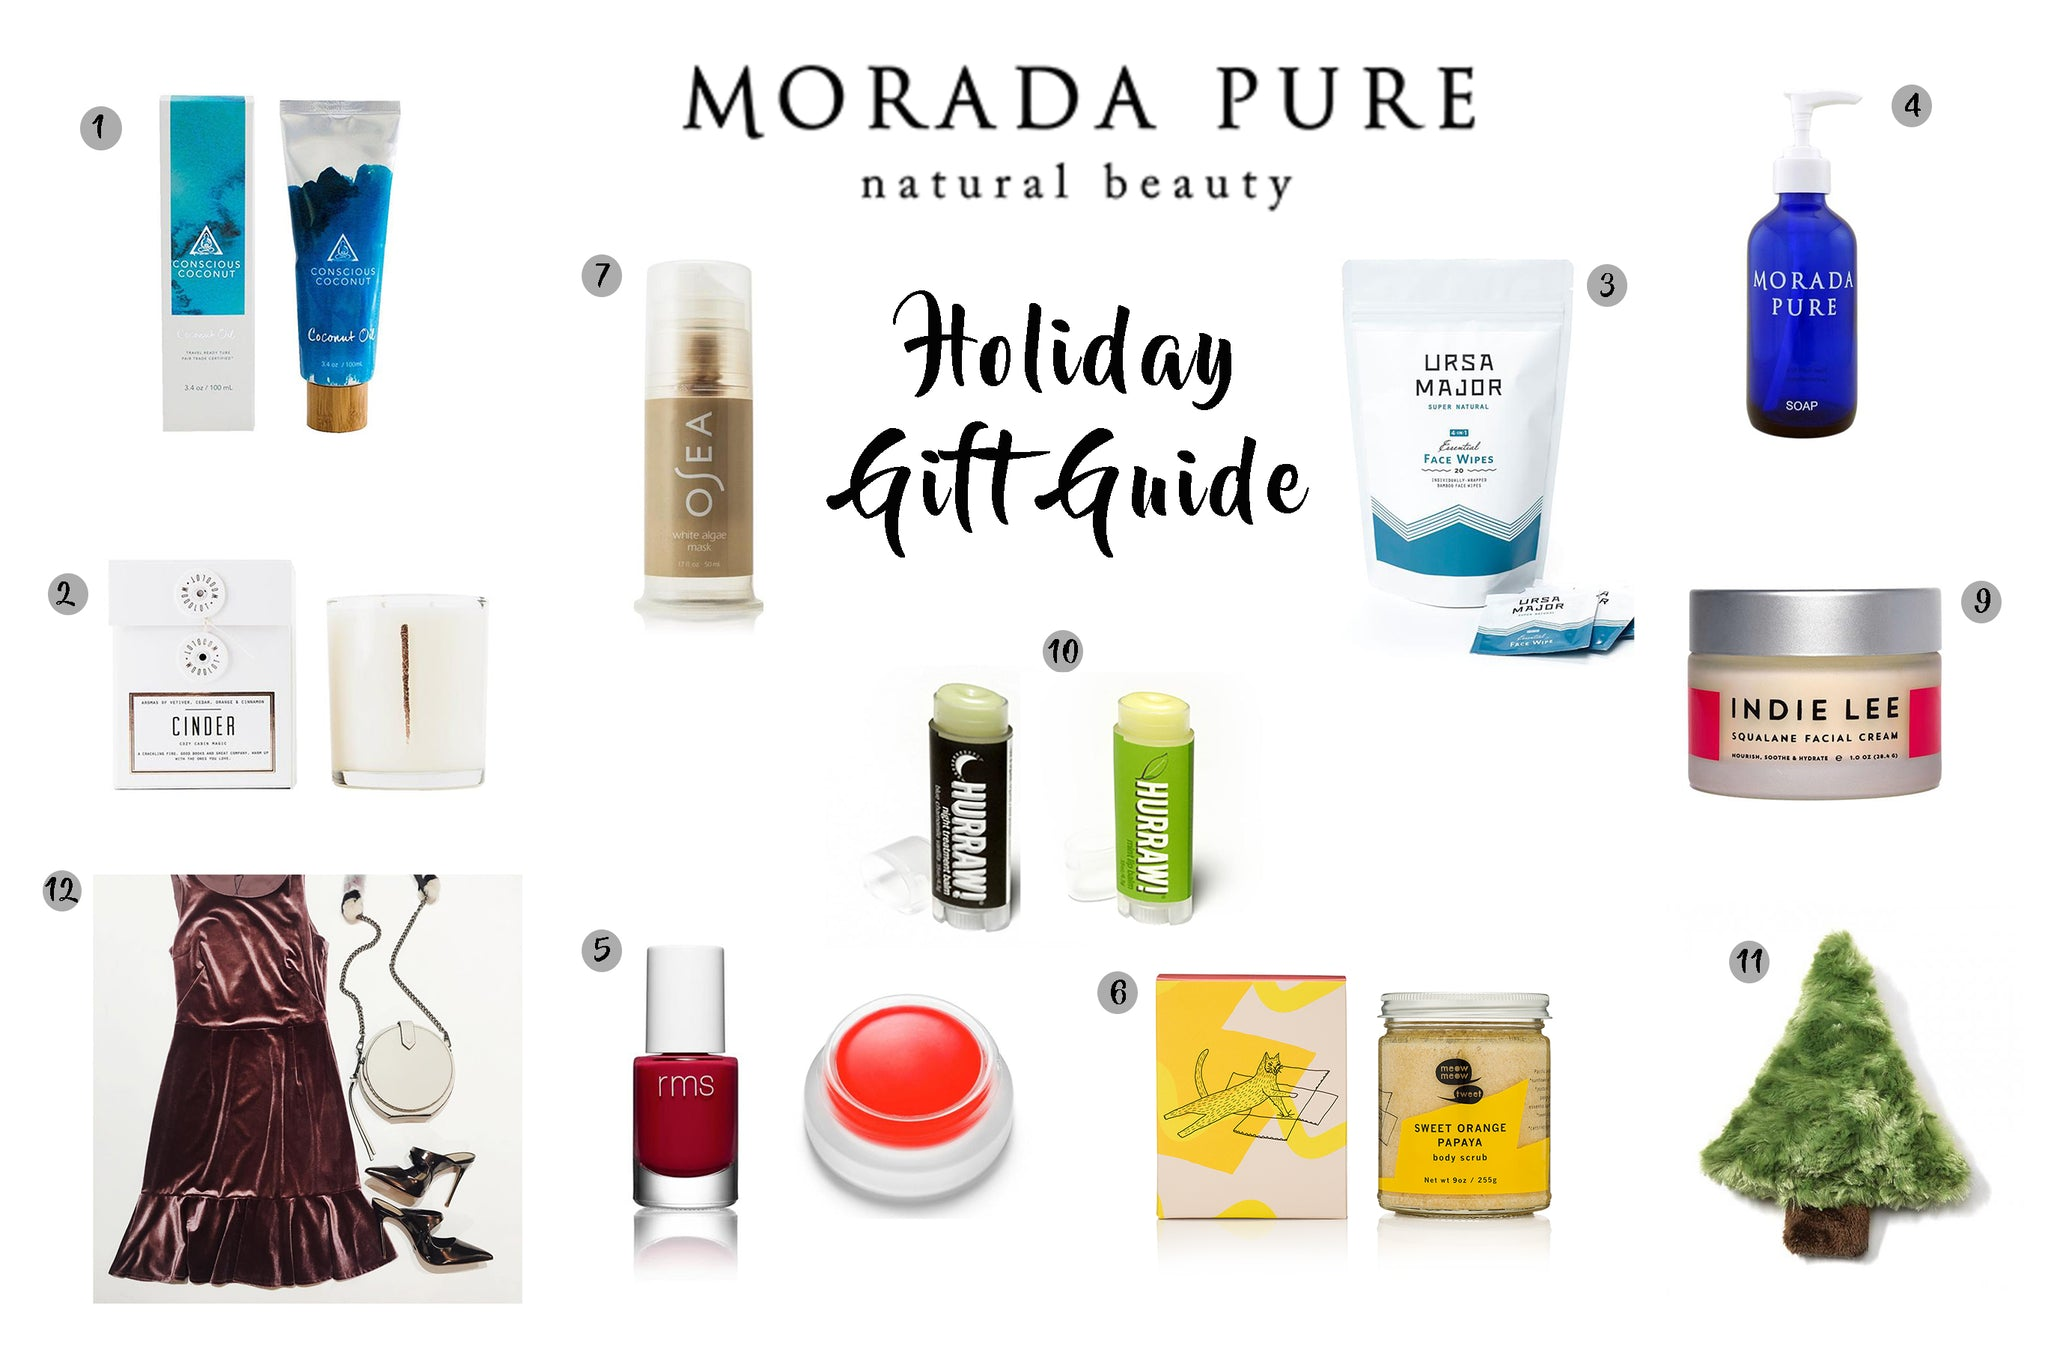 Morada Pure Holiday Gift Guide